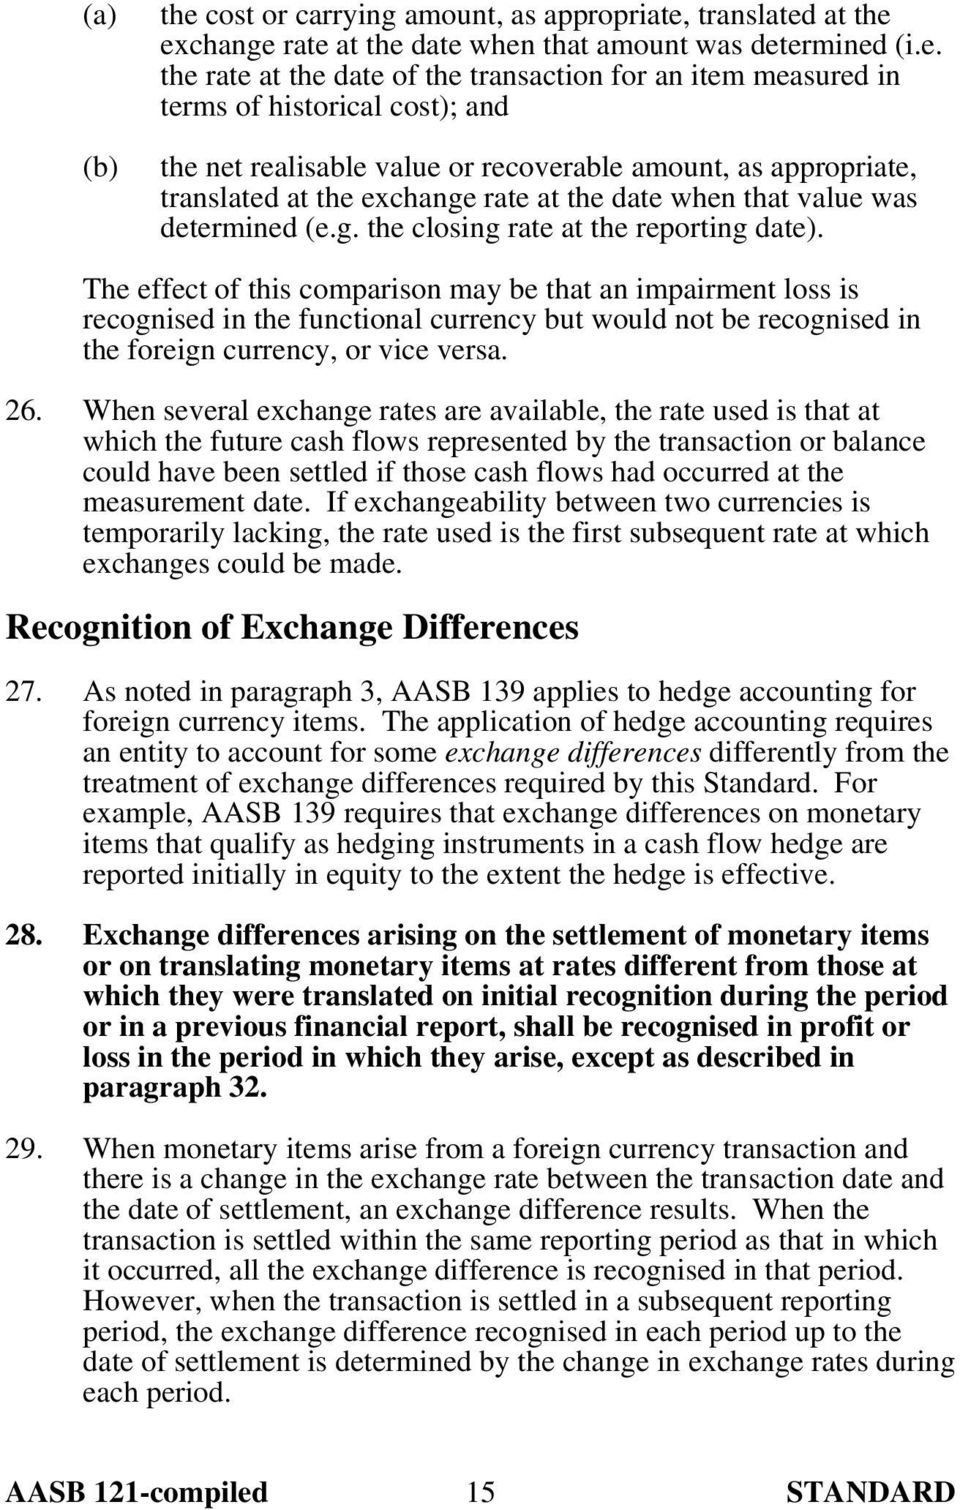 The effect of this comparison may be that an impairment loss is recognised in the functional currency but would not be recognised in the foreign currency, or vice versa. 26.